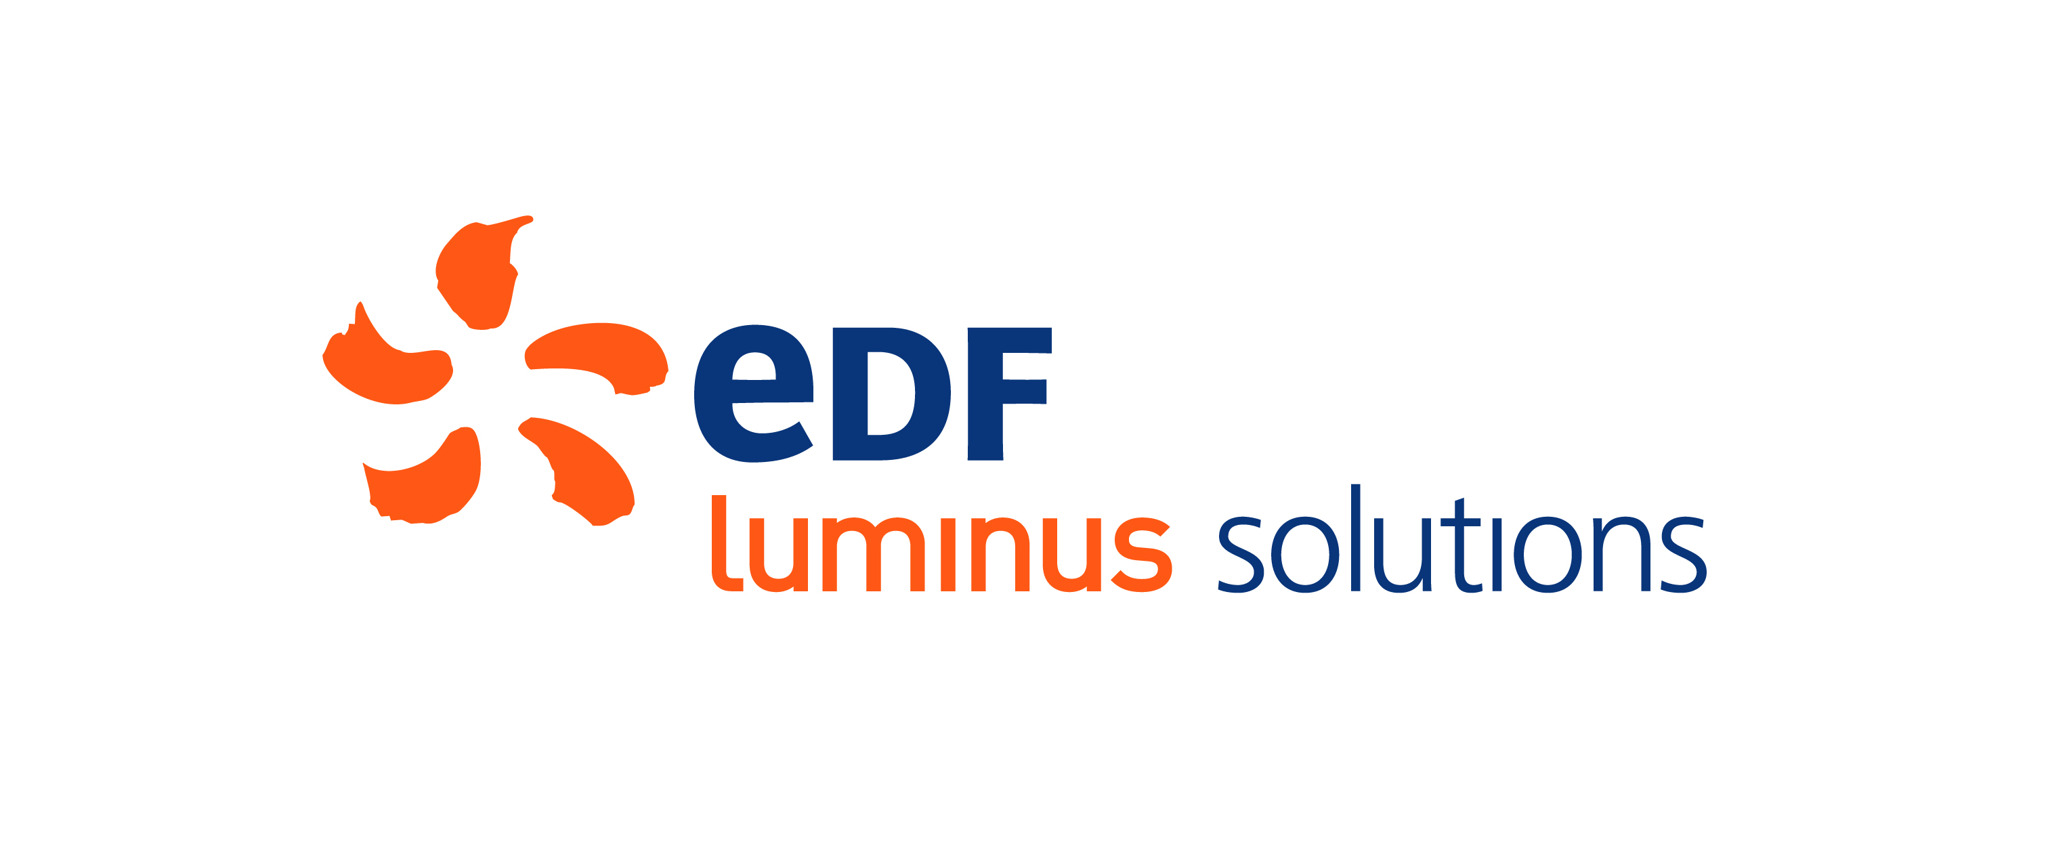 edf luminus strengthens its position to increase its